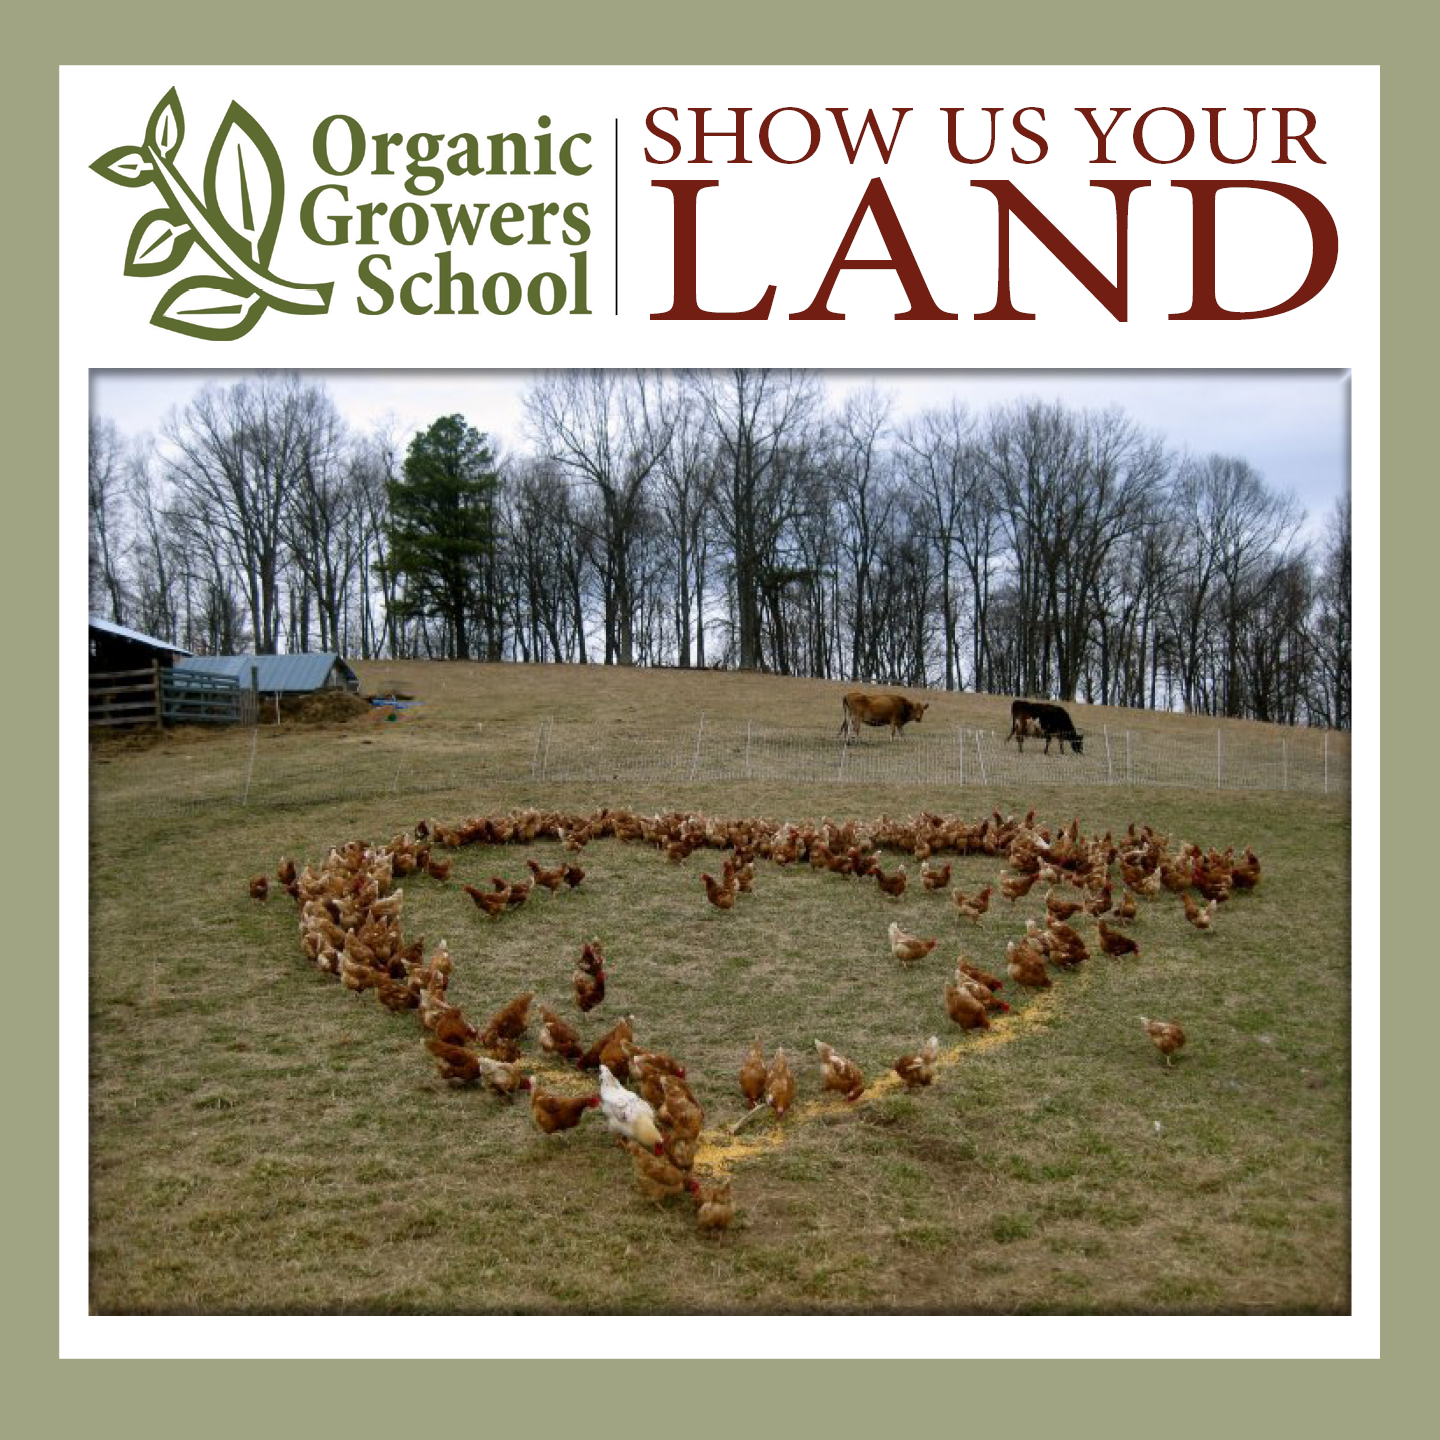 show us your land chickens